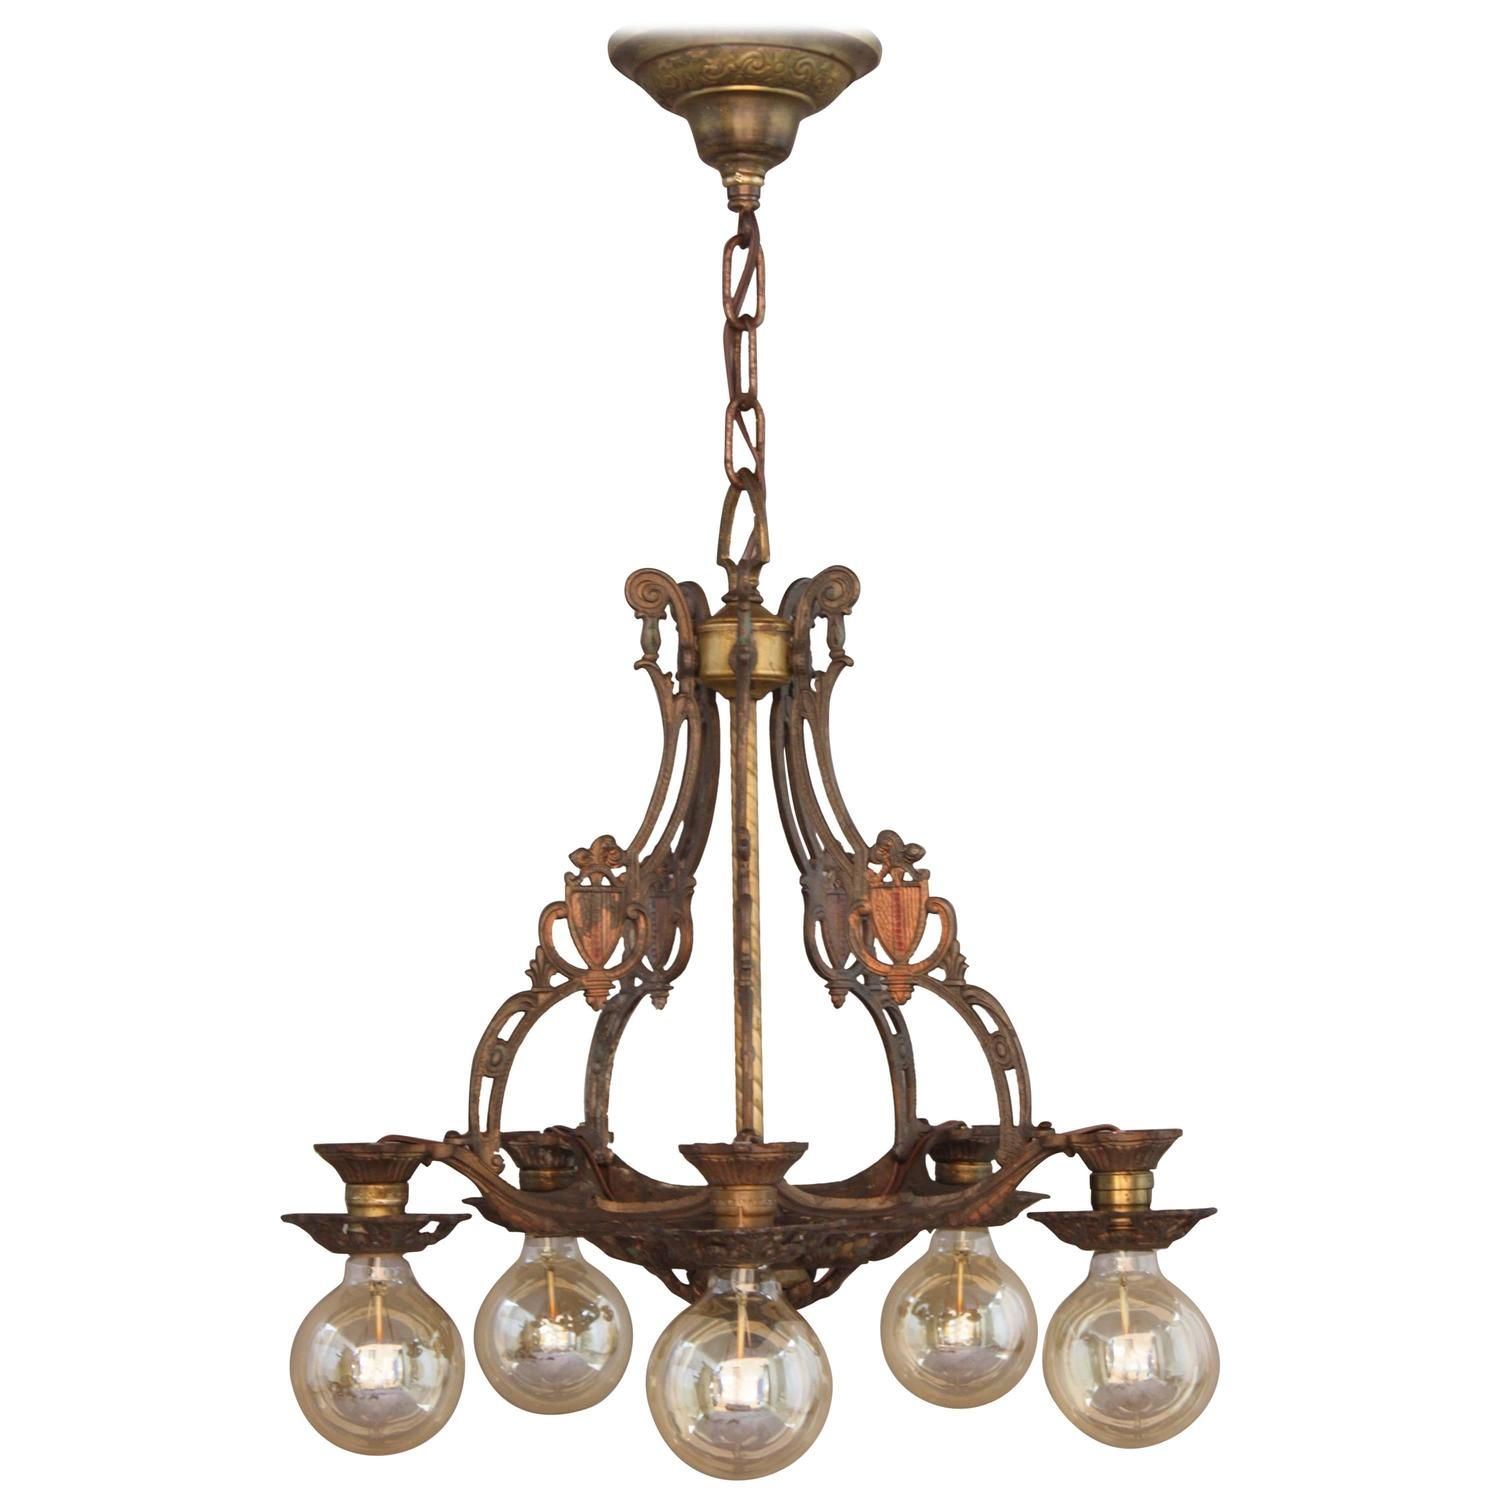 1920s polychrome downlight chandelier chandeliers pendant 1920s polychrome downlight chandelier arubaitofo Images